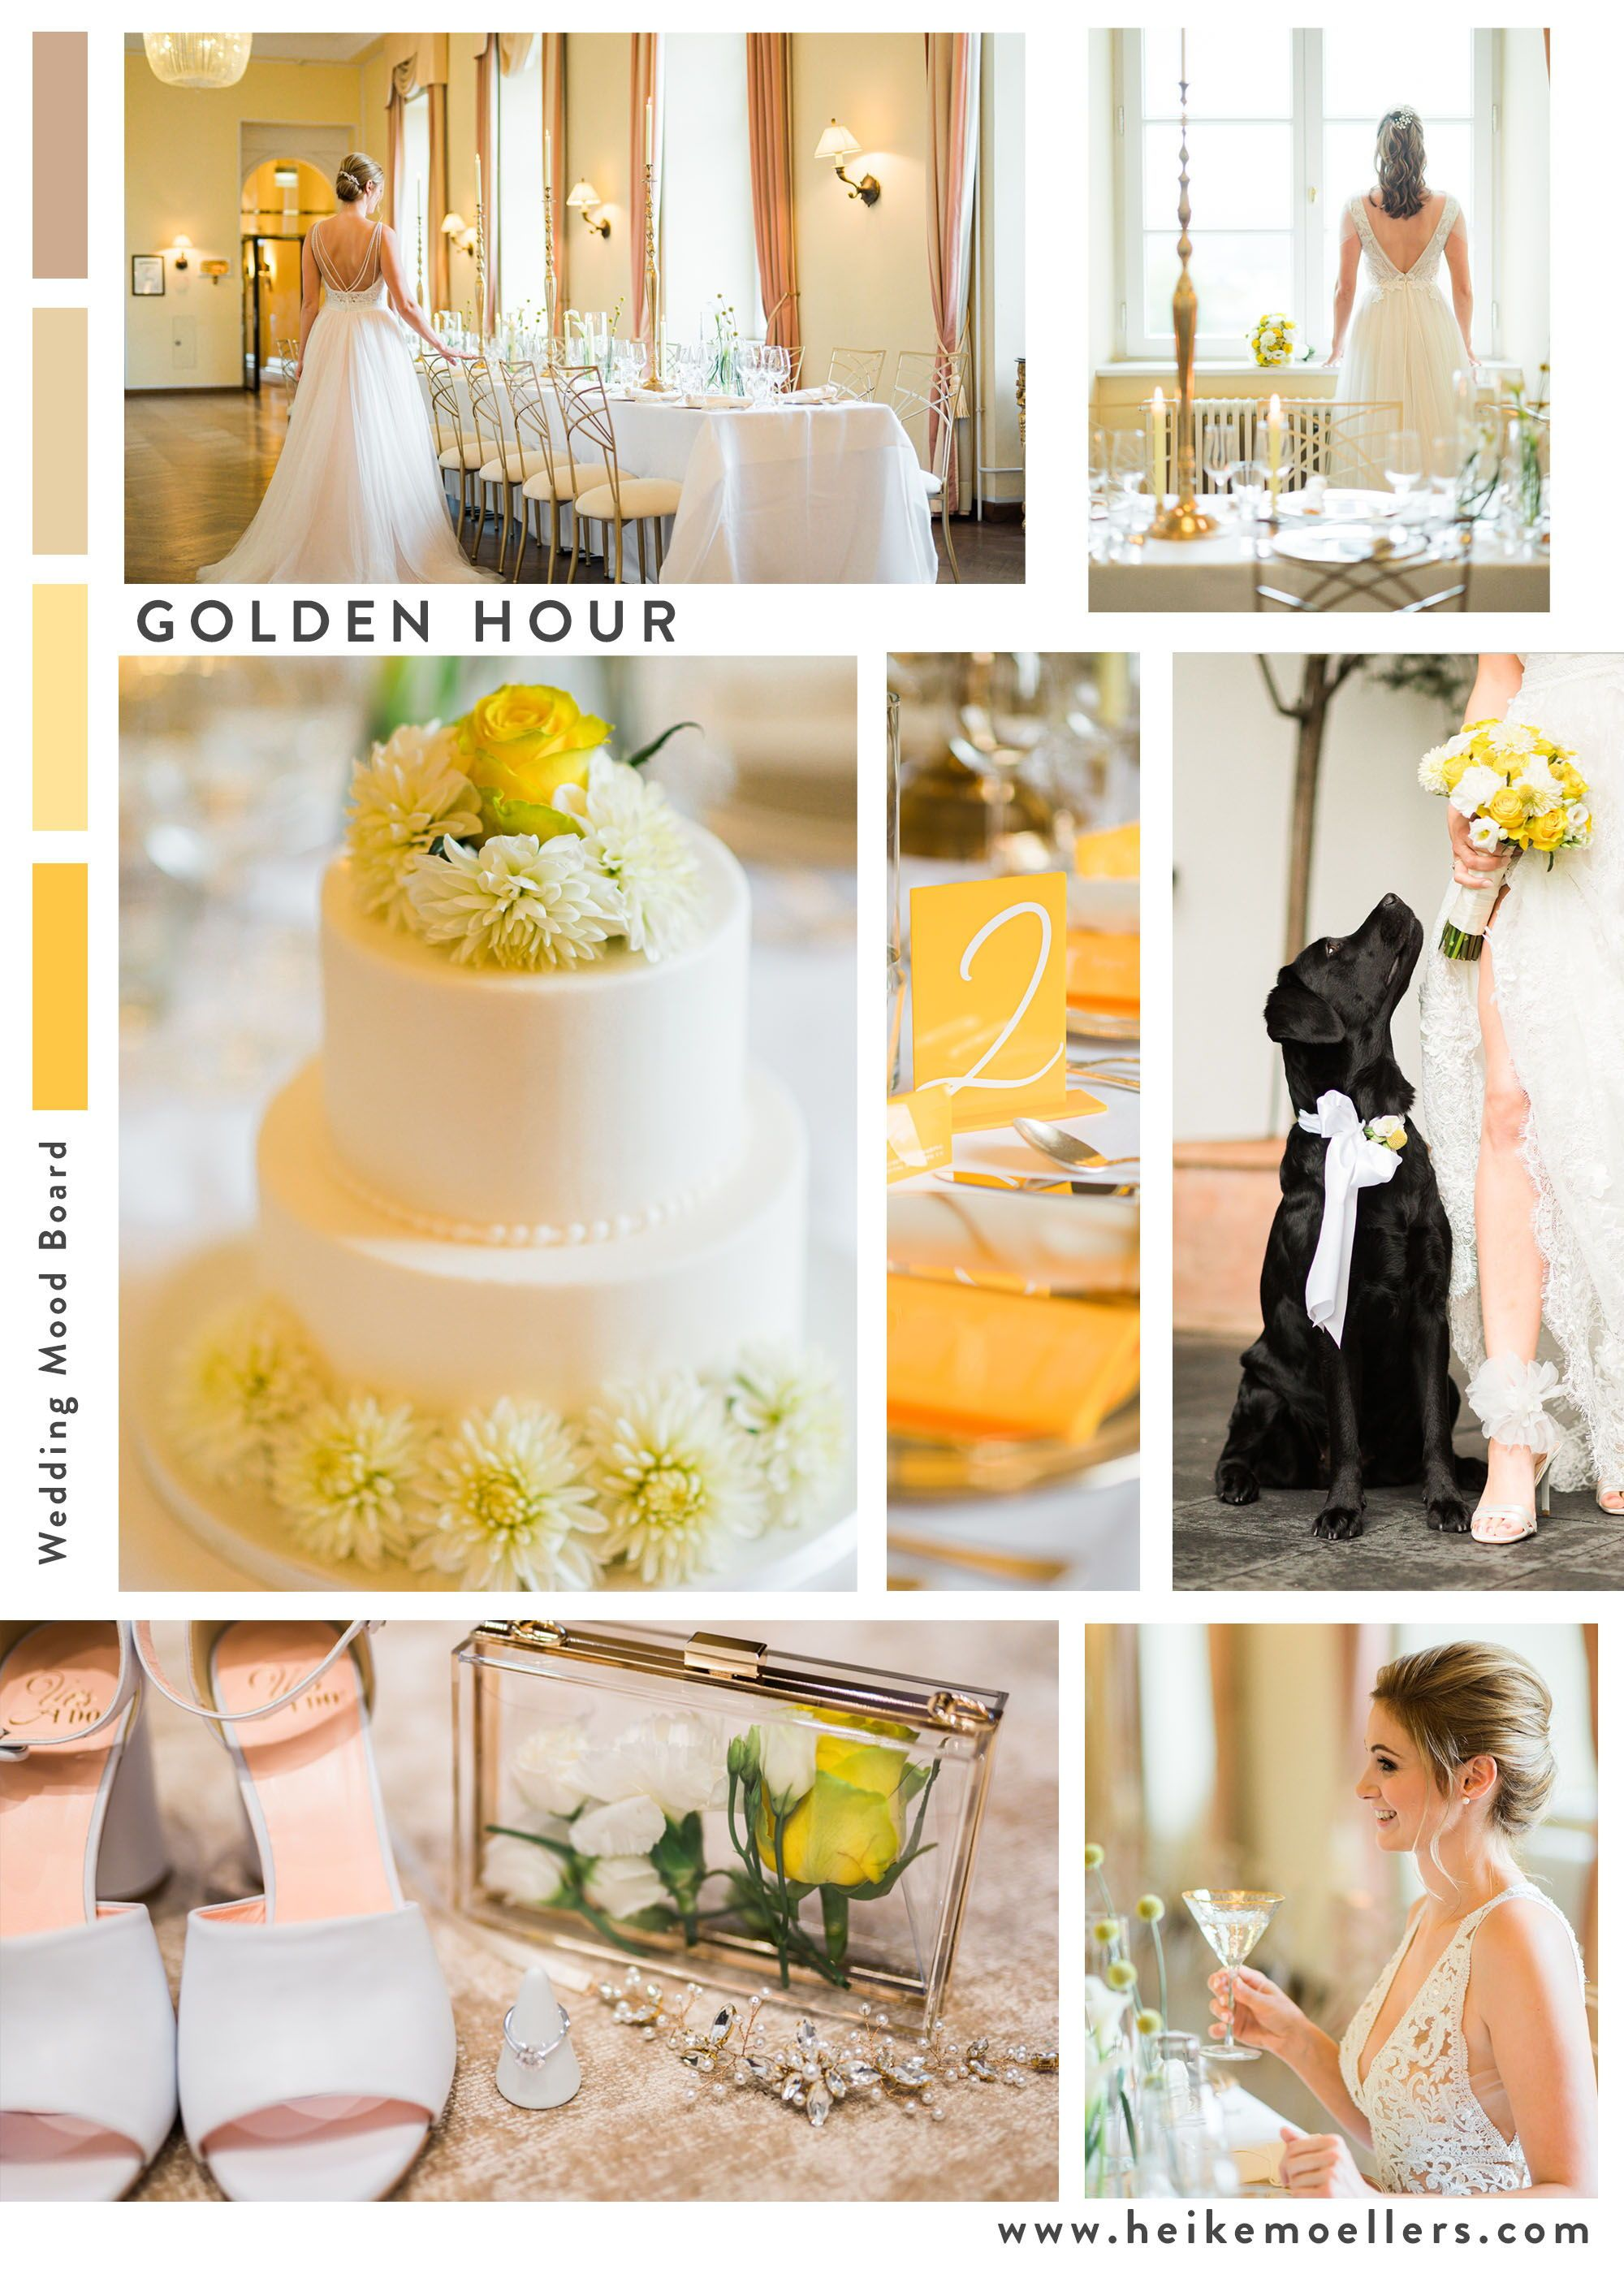 Golden and elegant are the words that came to mind when you see this modern wedding inspiration in a castle. Yellow is the key color of this sophisticated wedding inspiration. Find out more